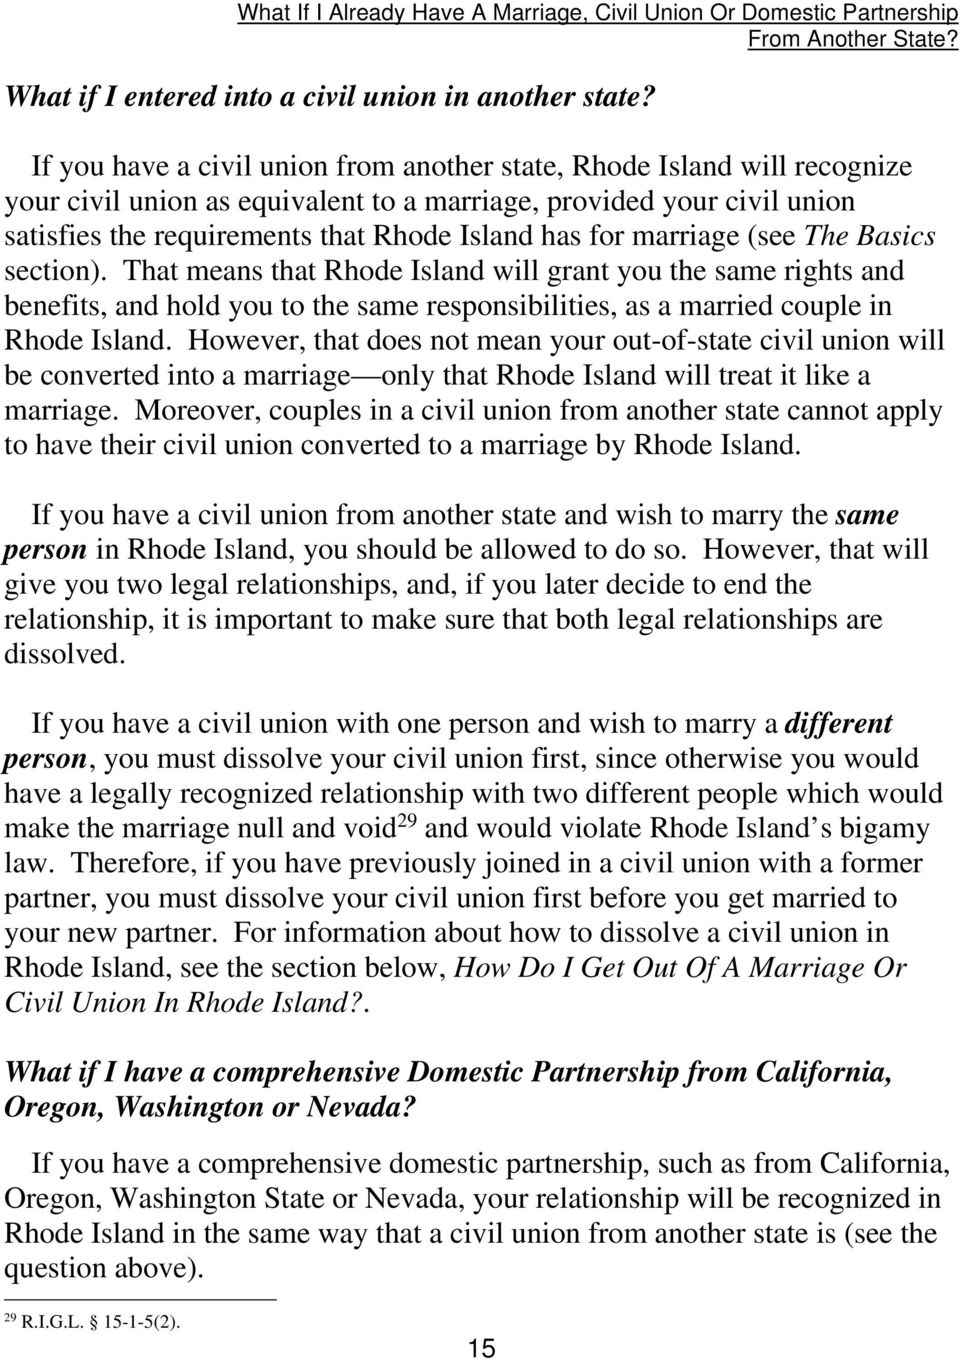 marriage (see The Basics section). That means that Rhode Island will grant you the same rights and benefits, and hold you to the same responsibilities, as a married couple in Rhode Island.